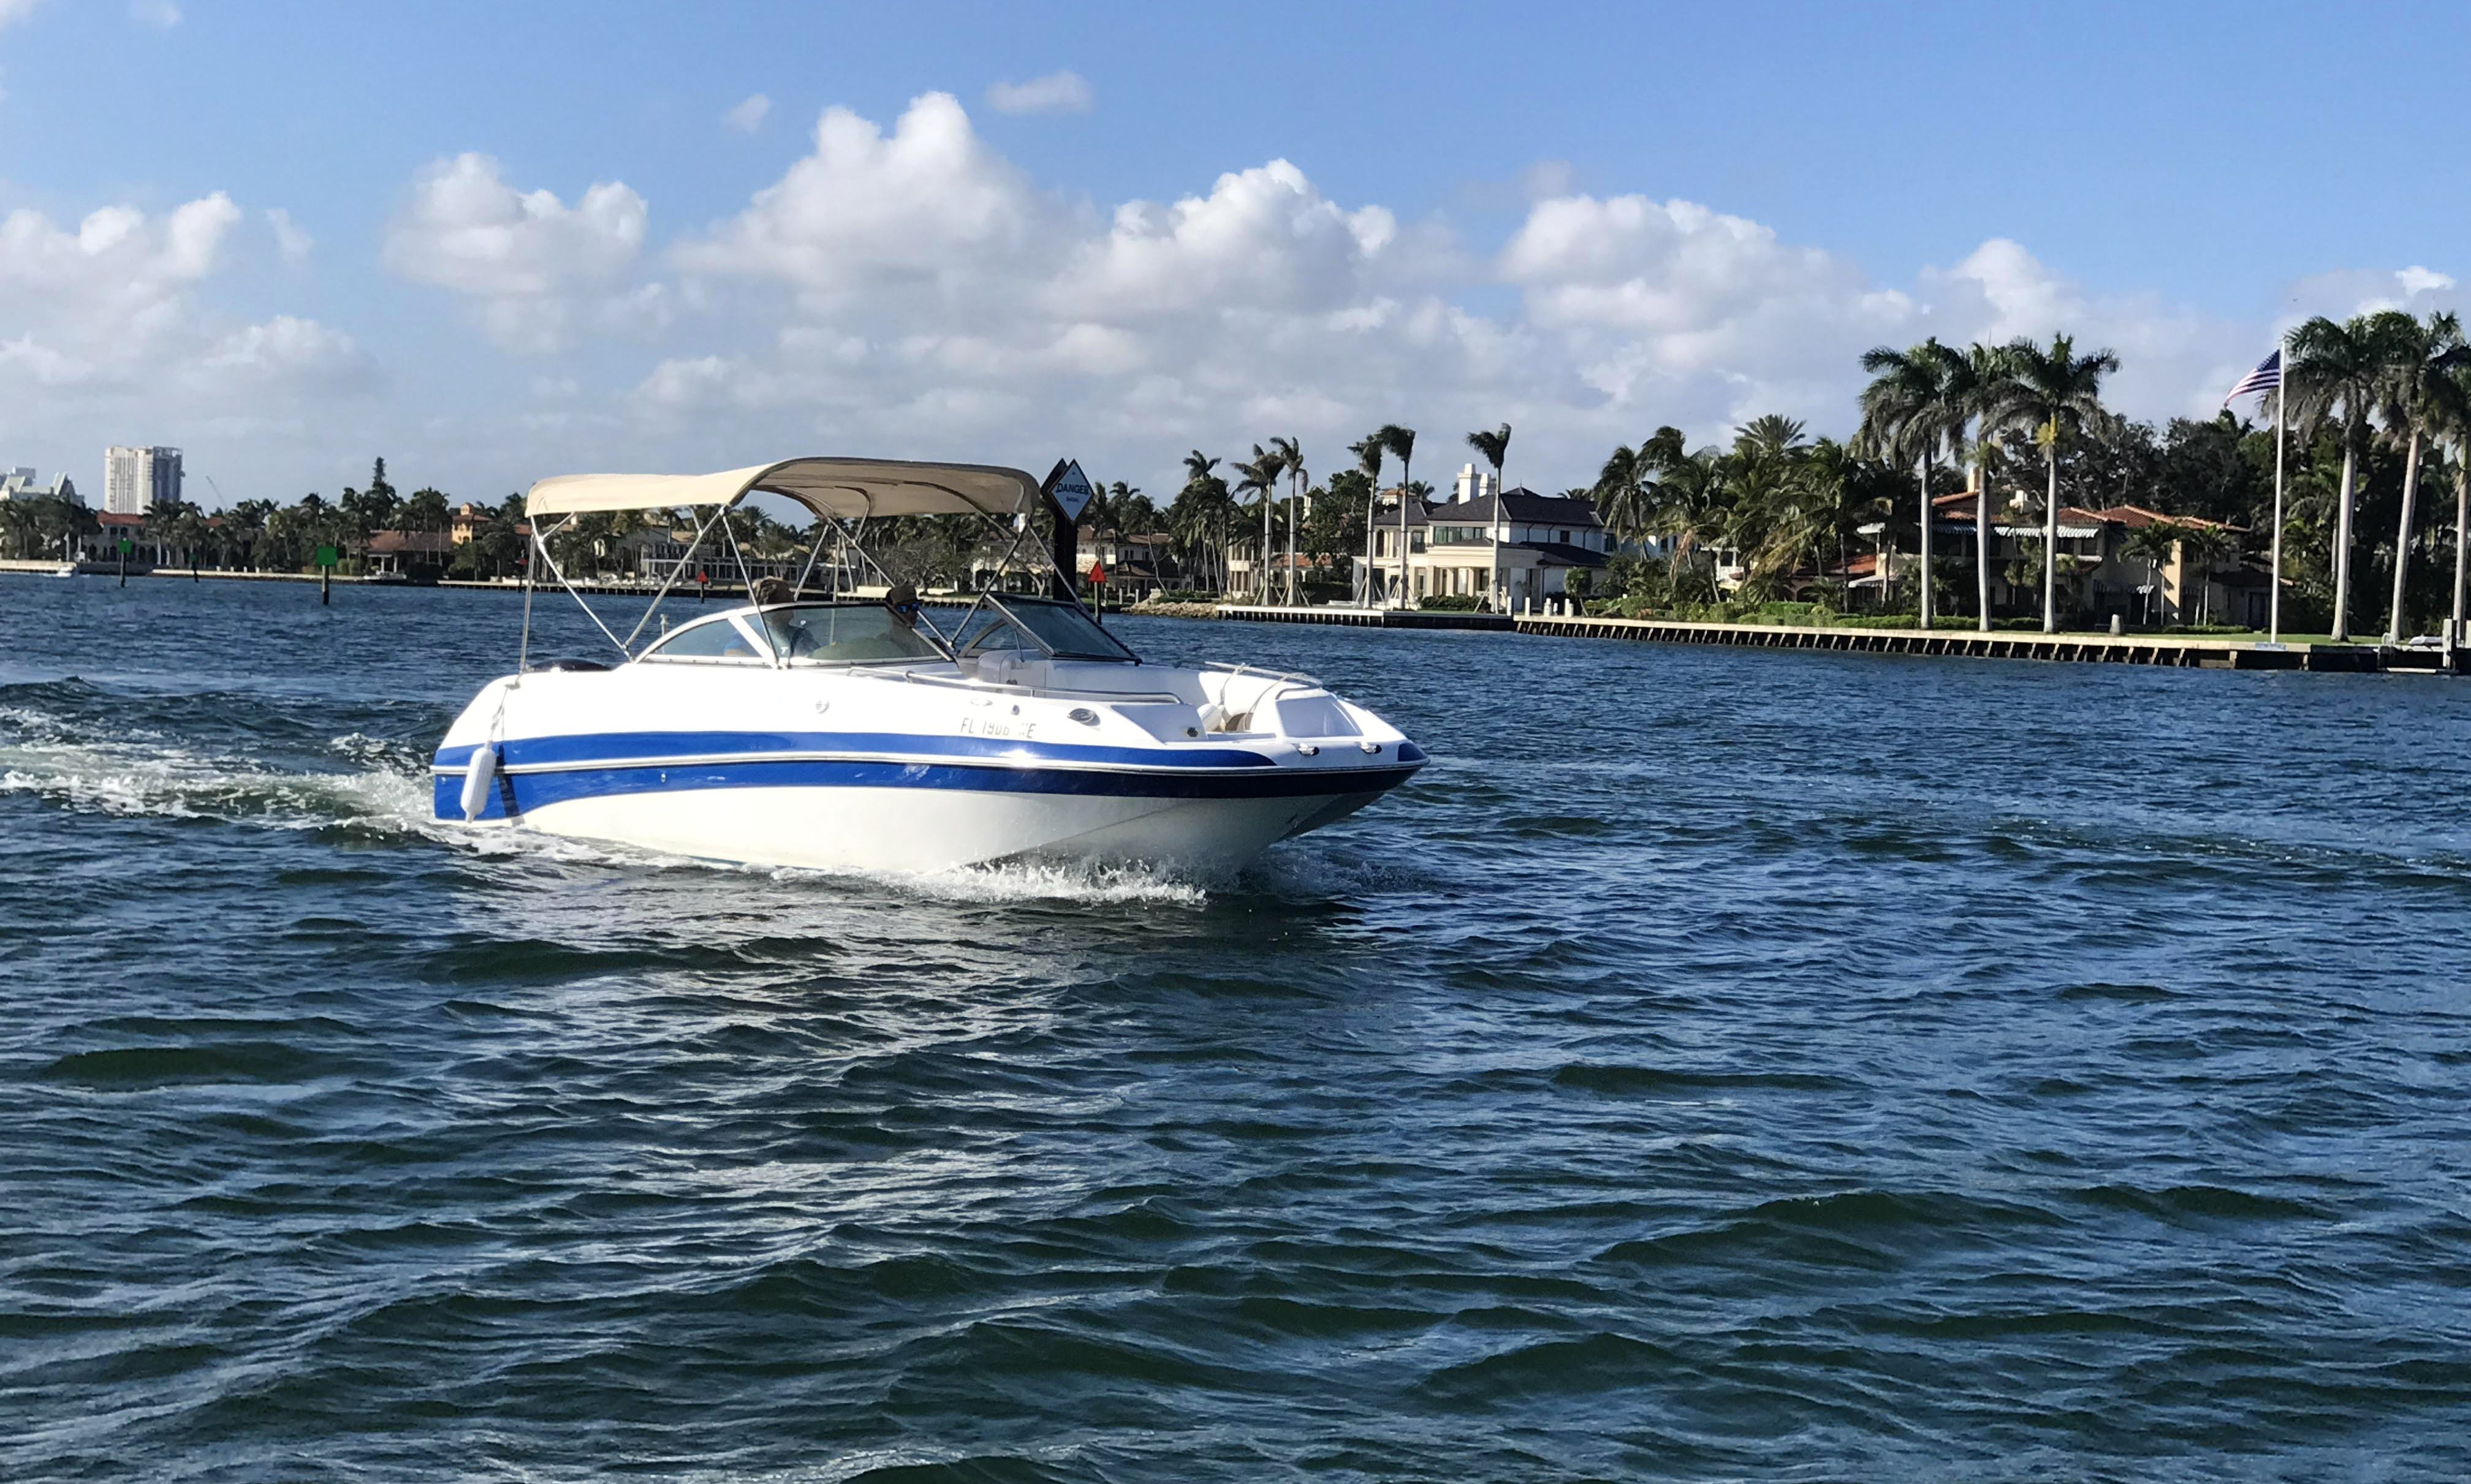 24ft Nauticstar Deck Boat rental in Fort Lauderdale for $121 an hour